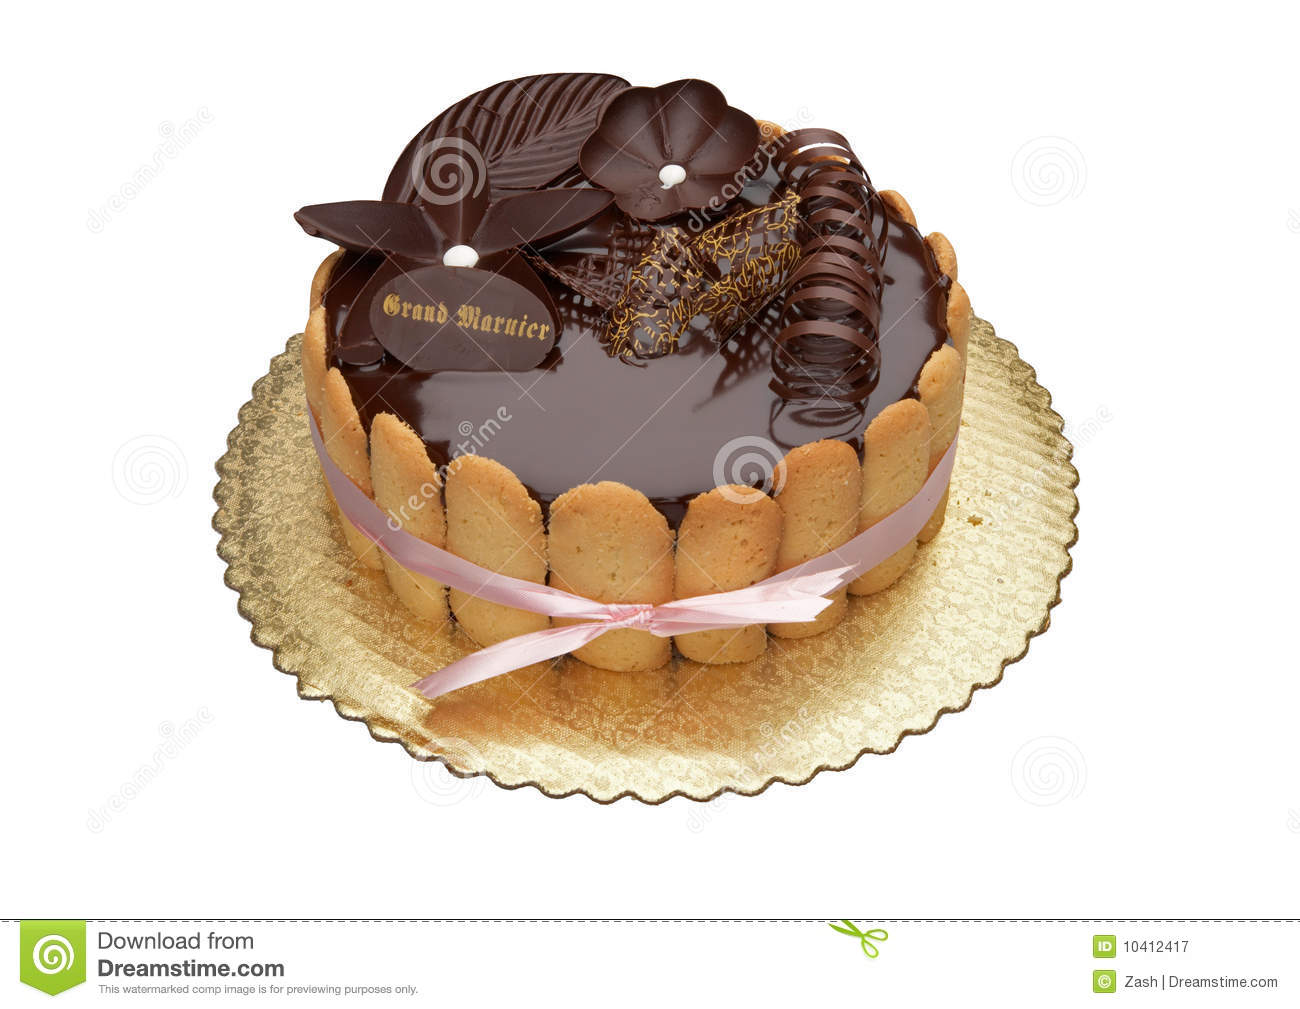 cake grand marnier cake grand marnier syrup grand marnier chocolate ...